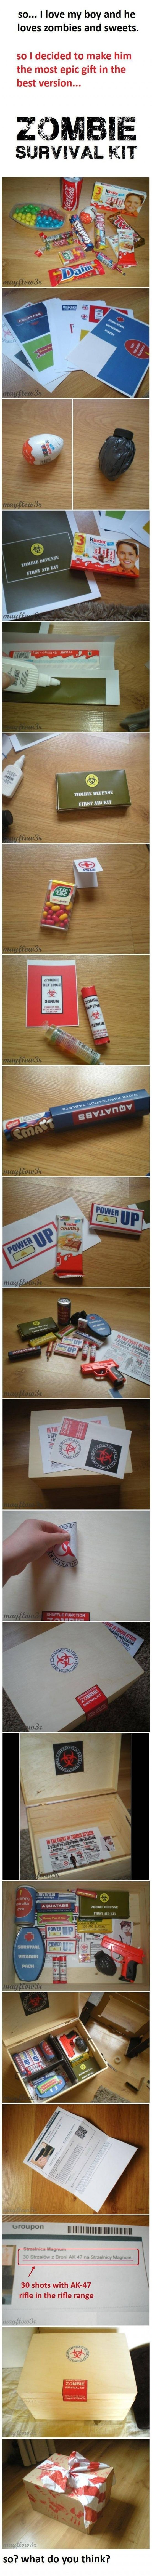 candy zombie survival kit